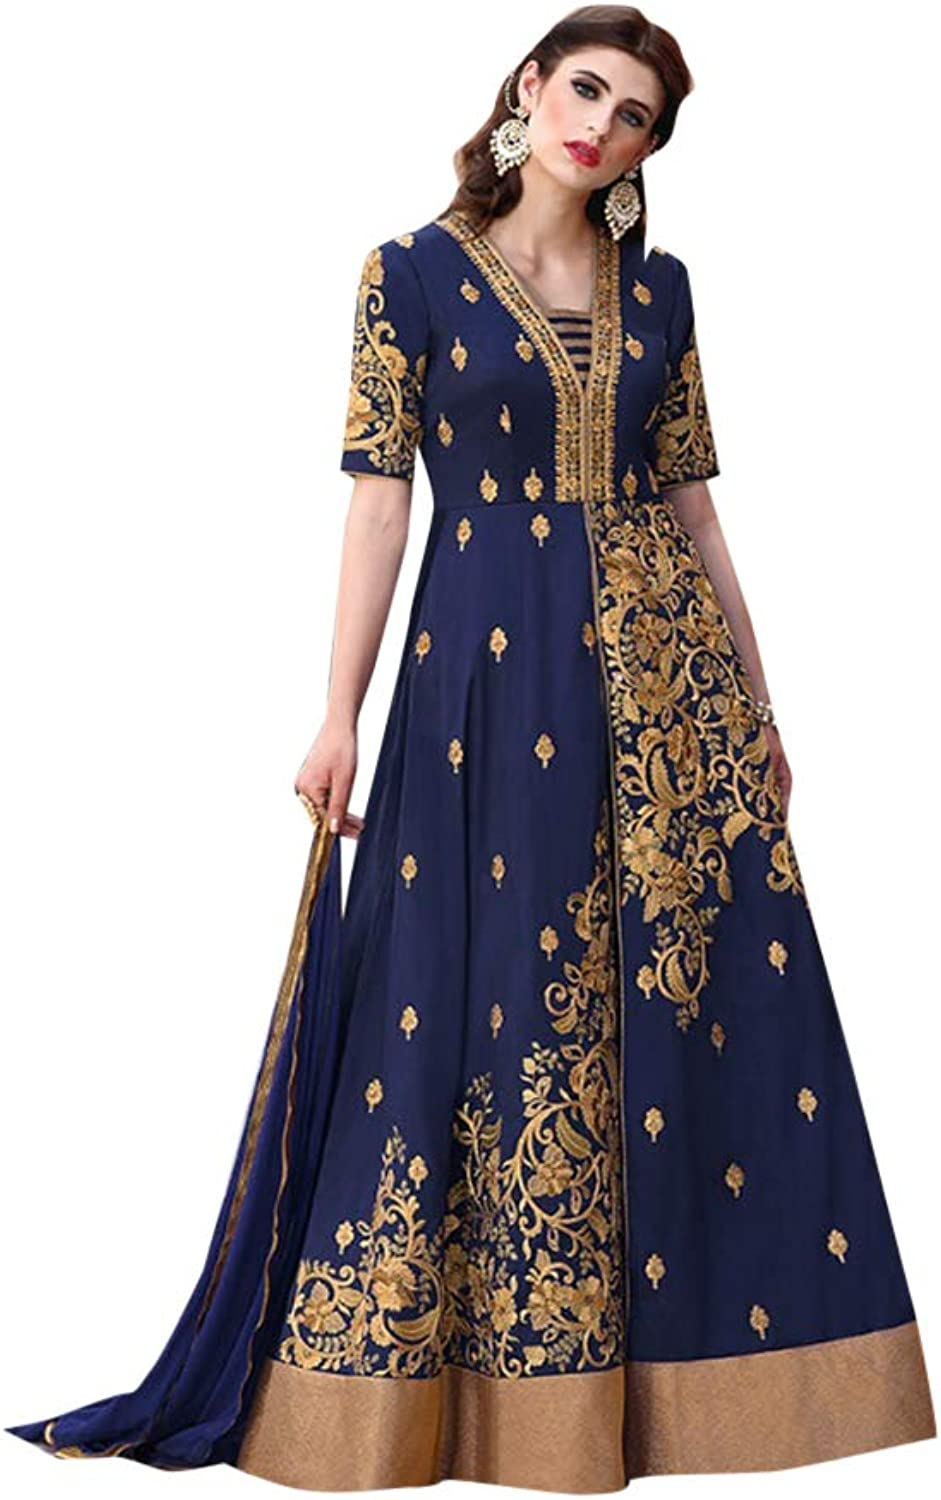 Designer Front Split Navybluee Tafeta Silk Anarkali Pant style Suit for Women Trendy Indian Party dress 7569